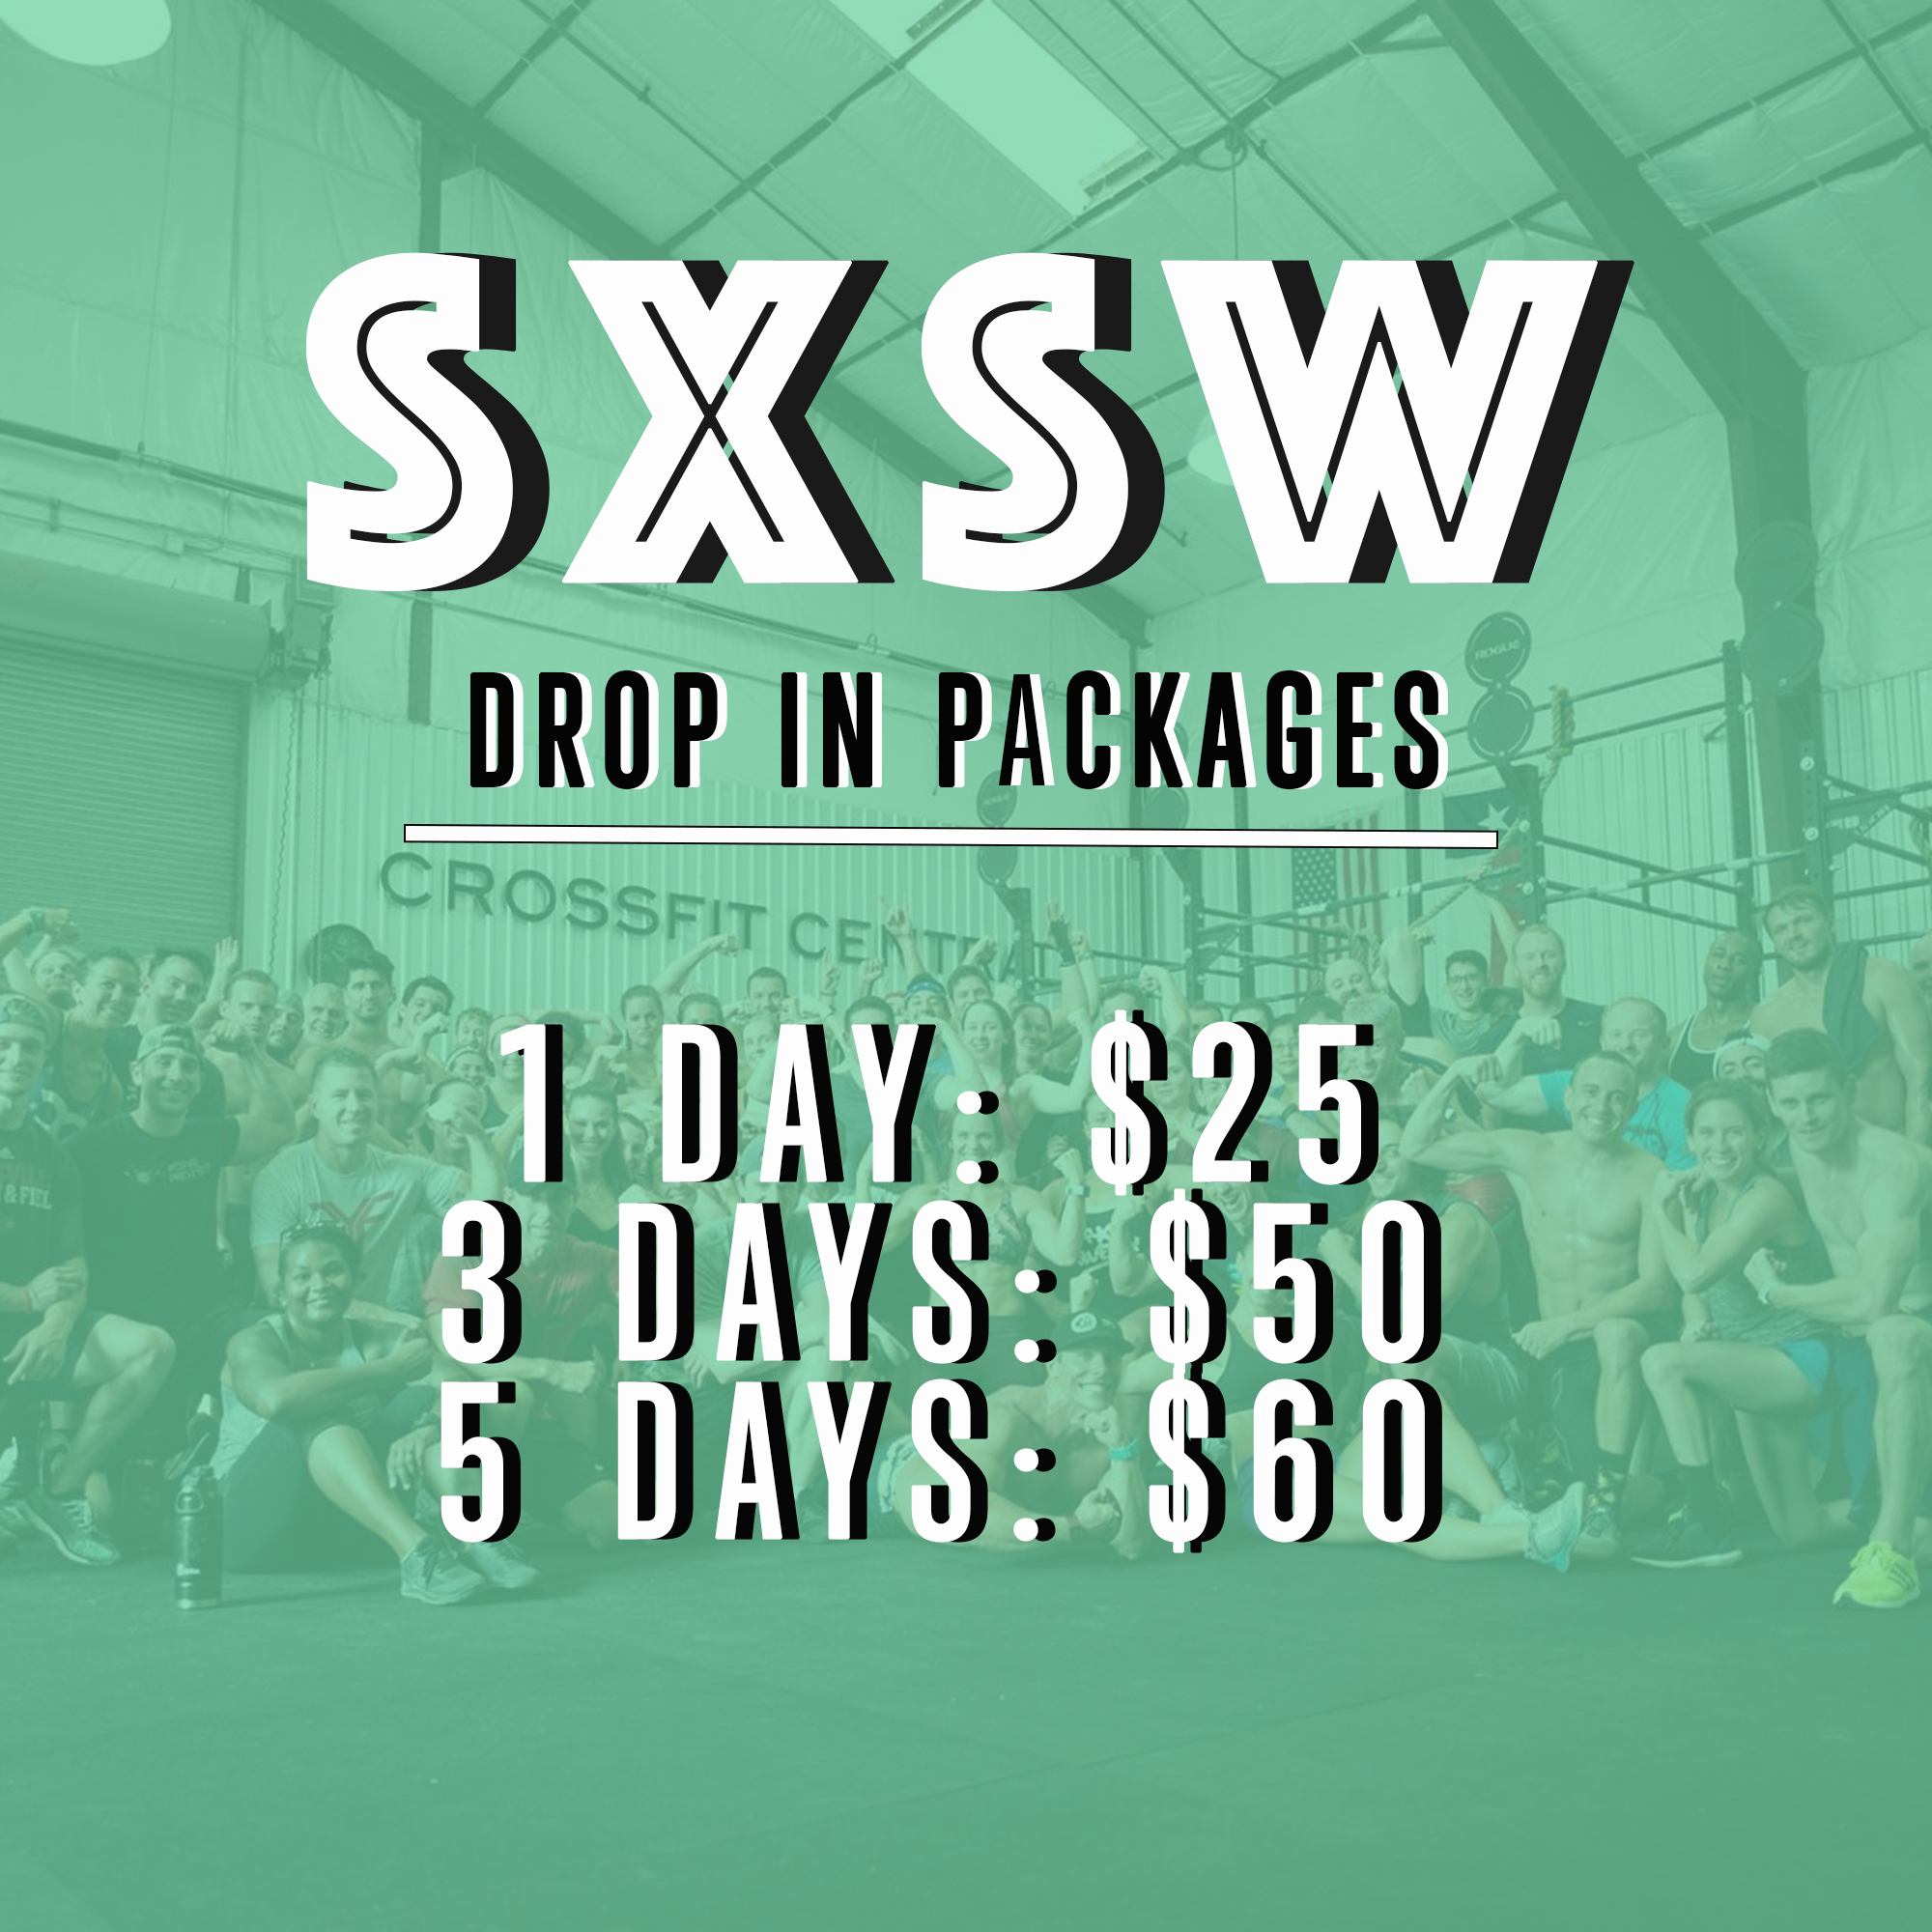 SXSWDropInPackages.png